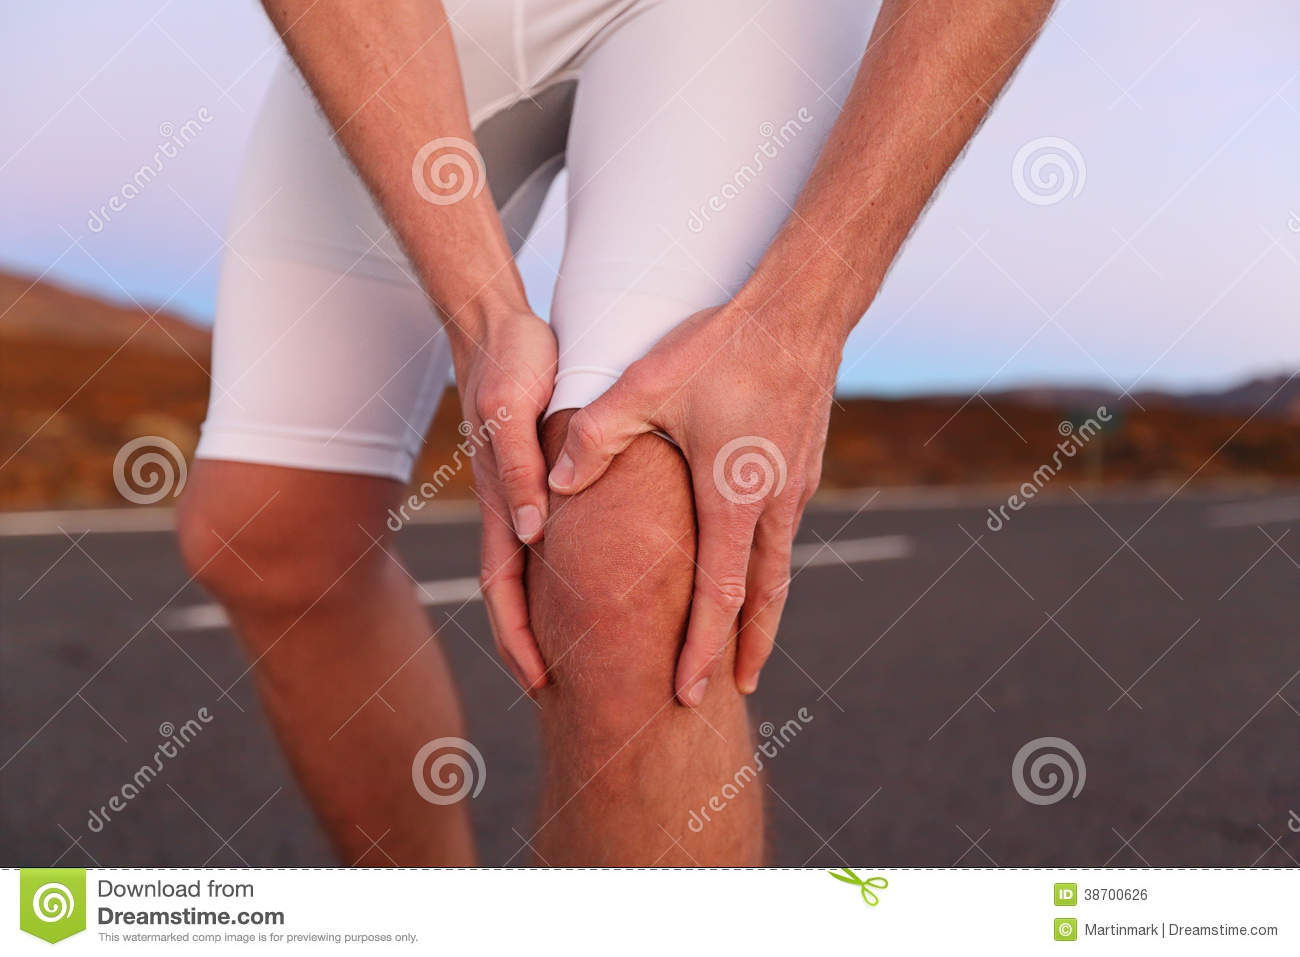 Knee pain running sport injury royalty free stock image for Exterior knee pain